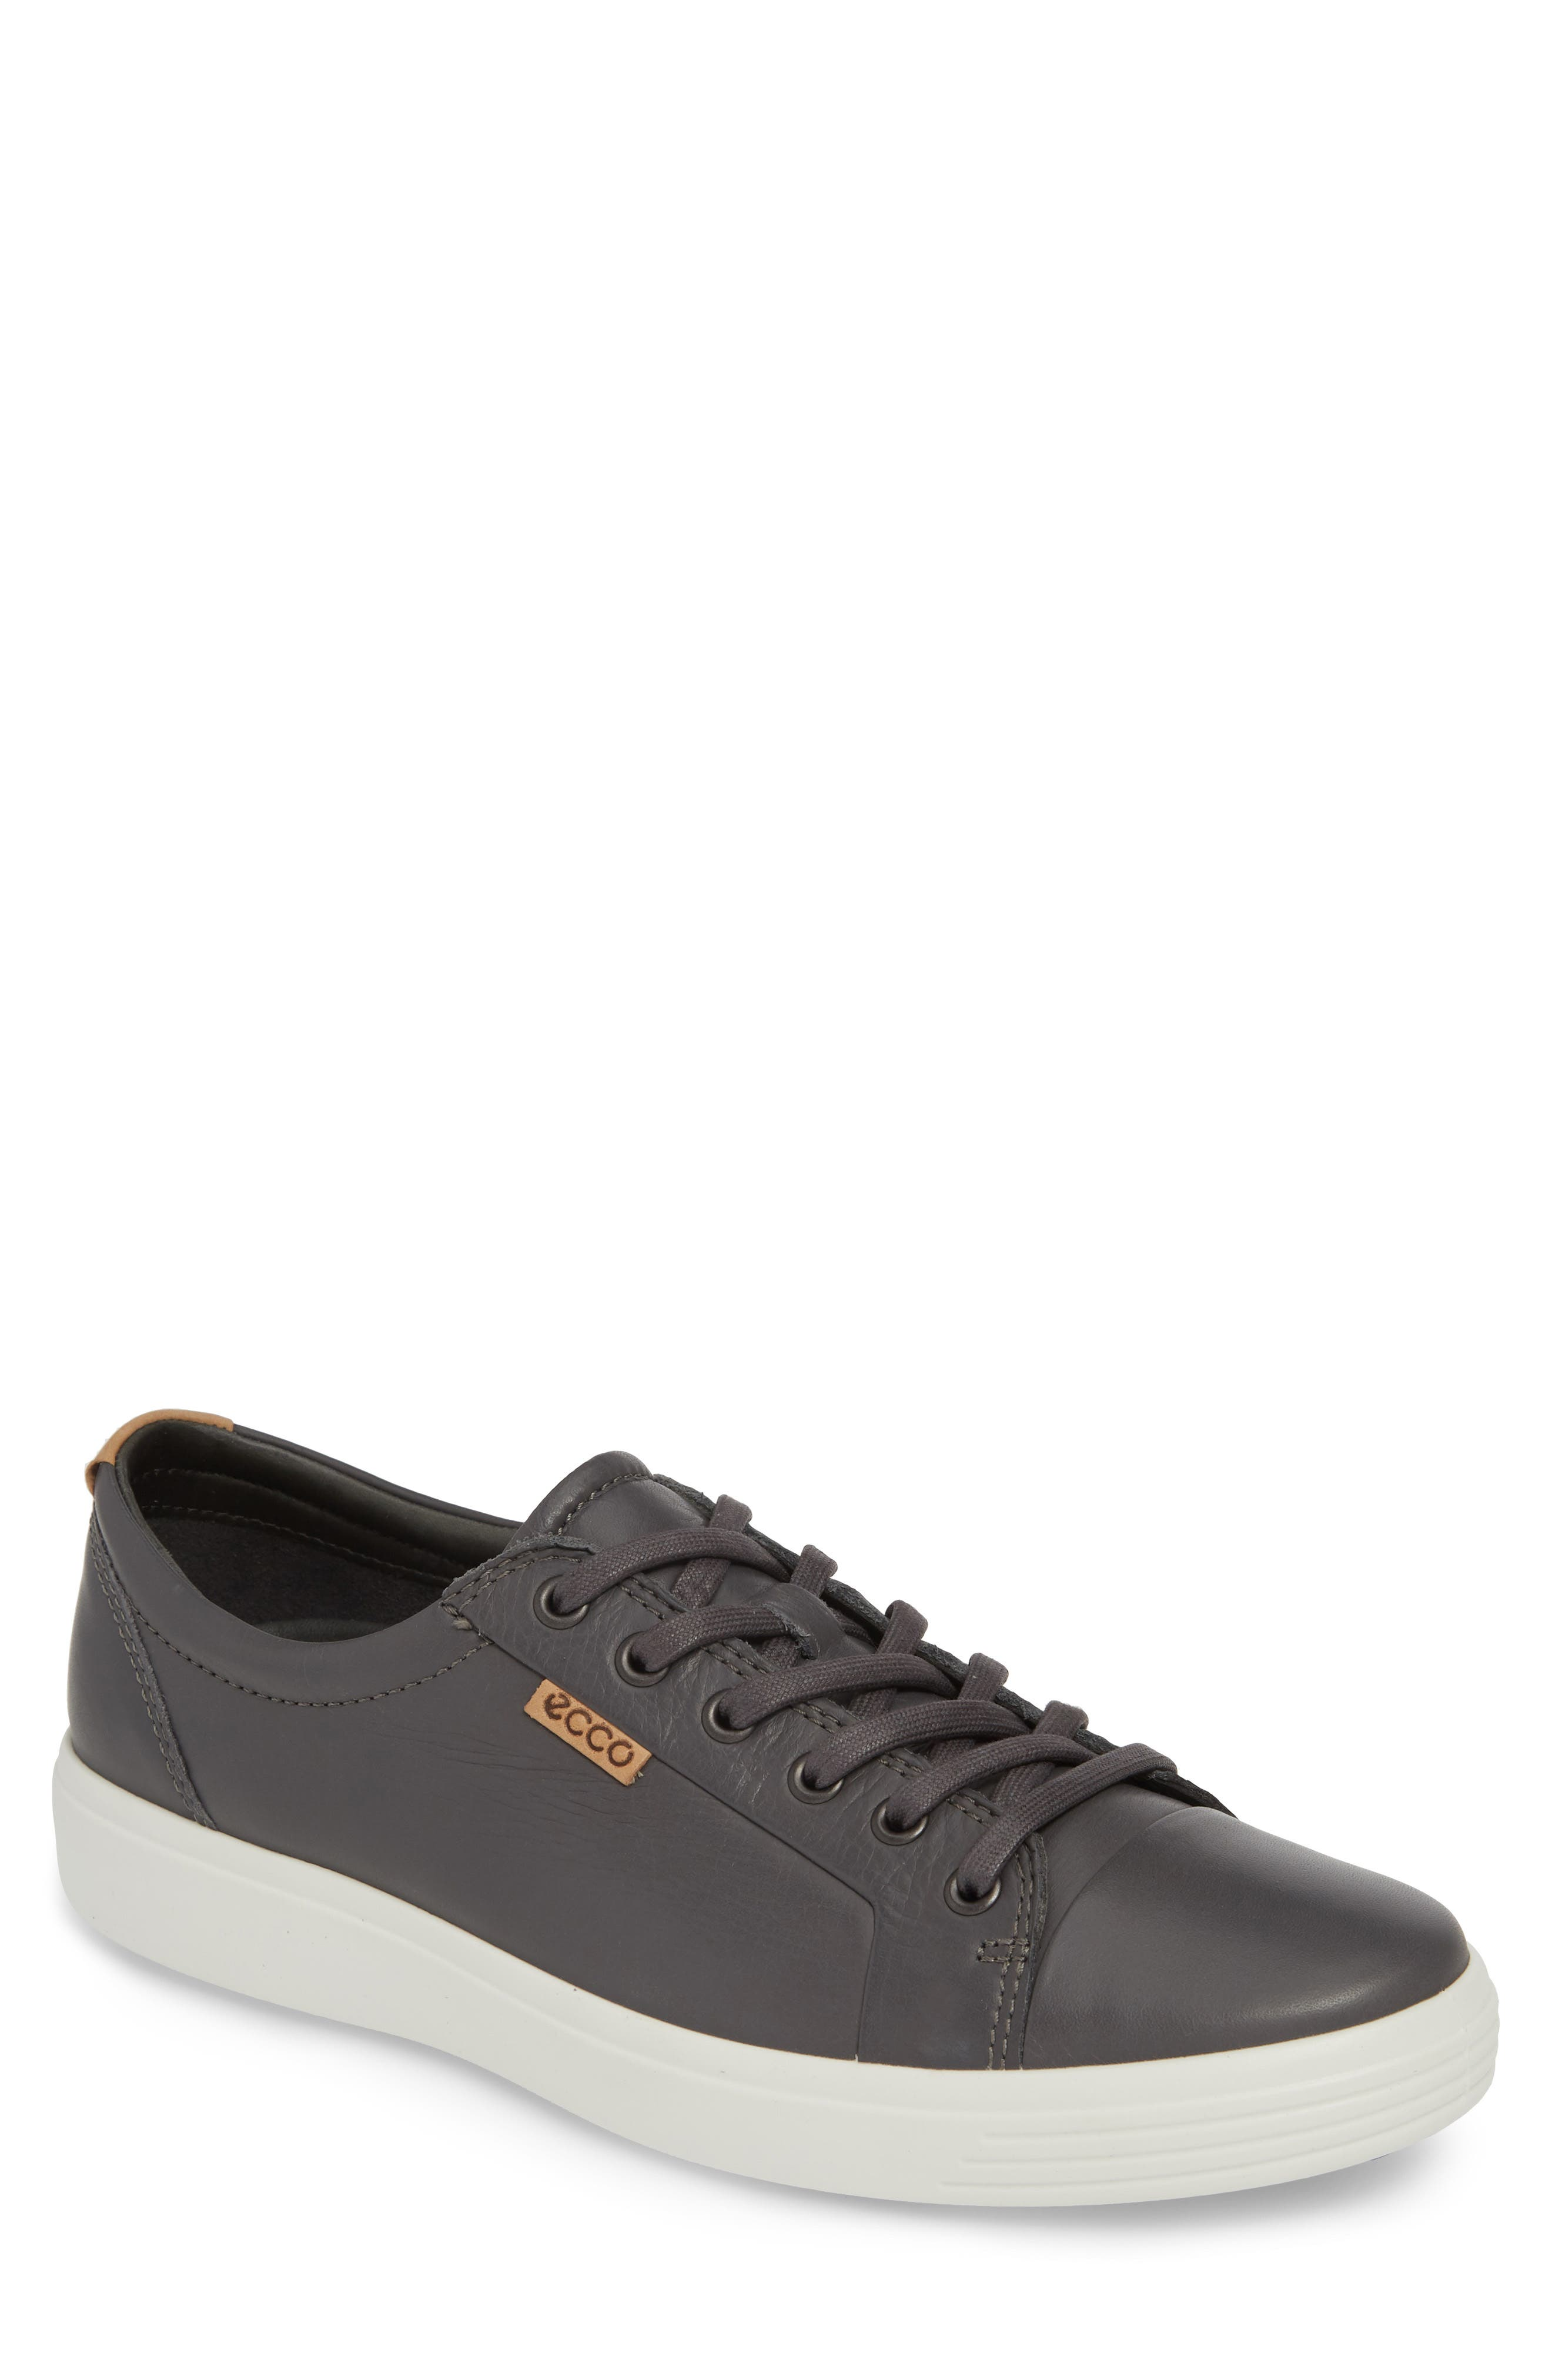 Soft VII Lace-Up Sneaker, Main, color, GREY DRAGO